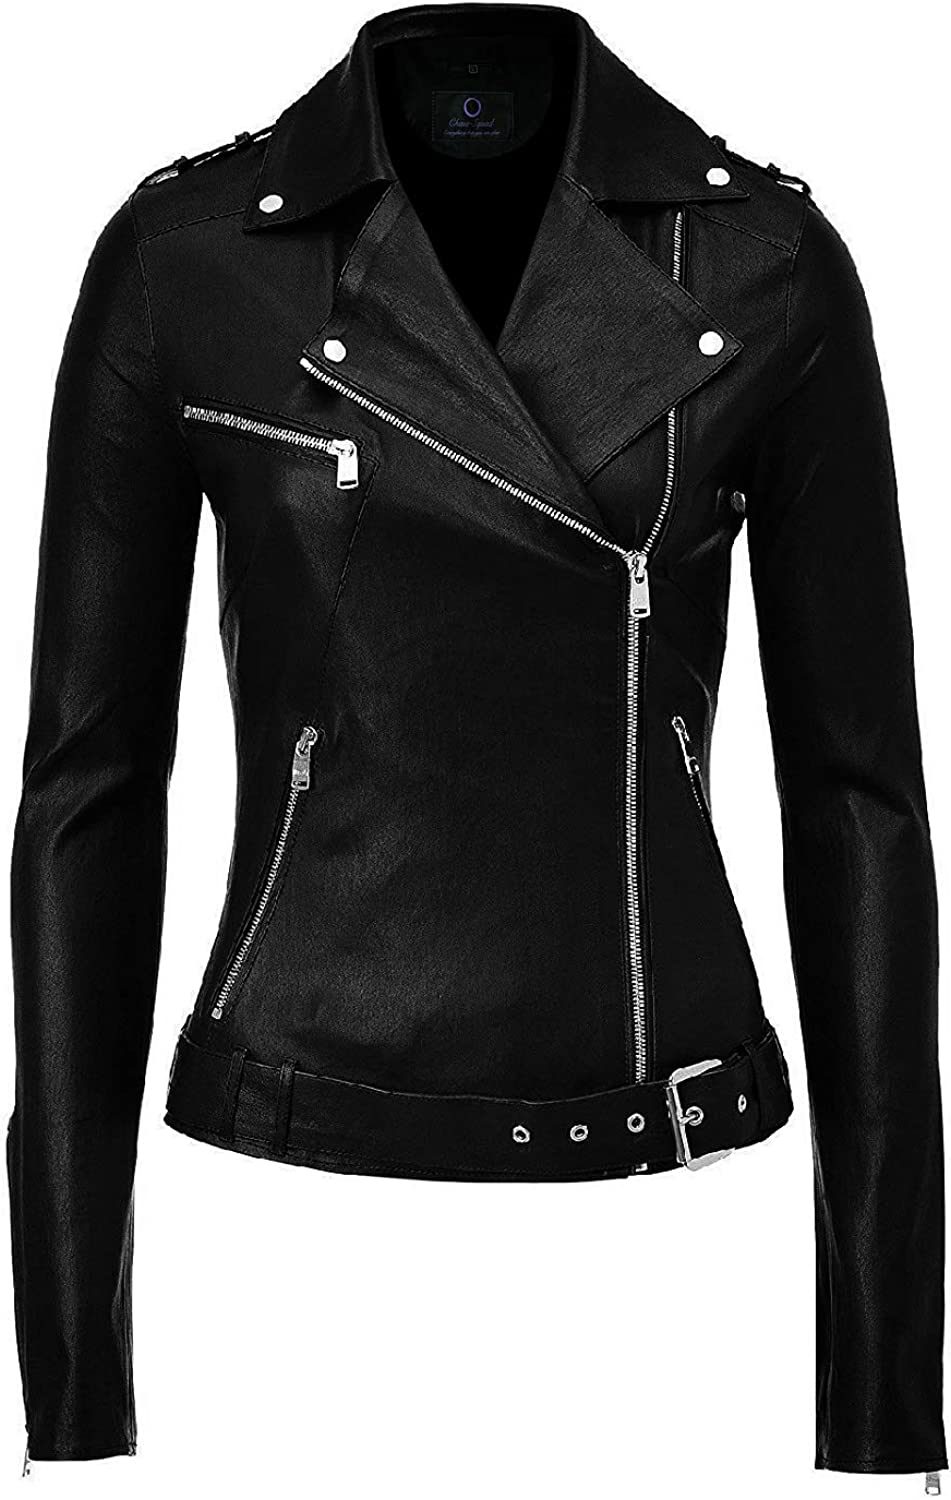 Chase Squad Notch Collar Biker Faux Leather Jacket Women  Long Sleeves Leather Jacket with Adjustable Waist Belt